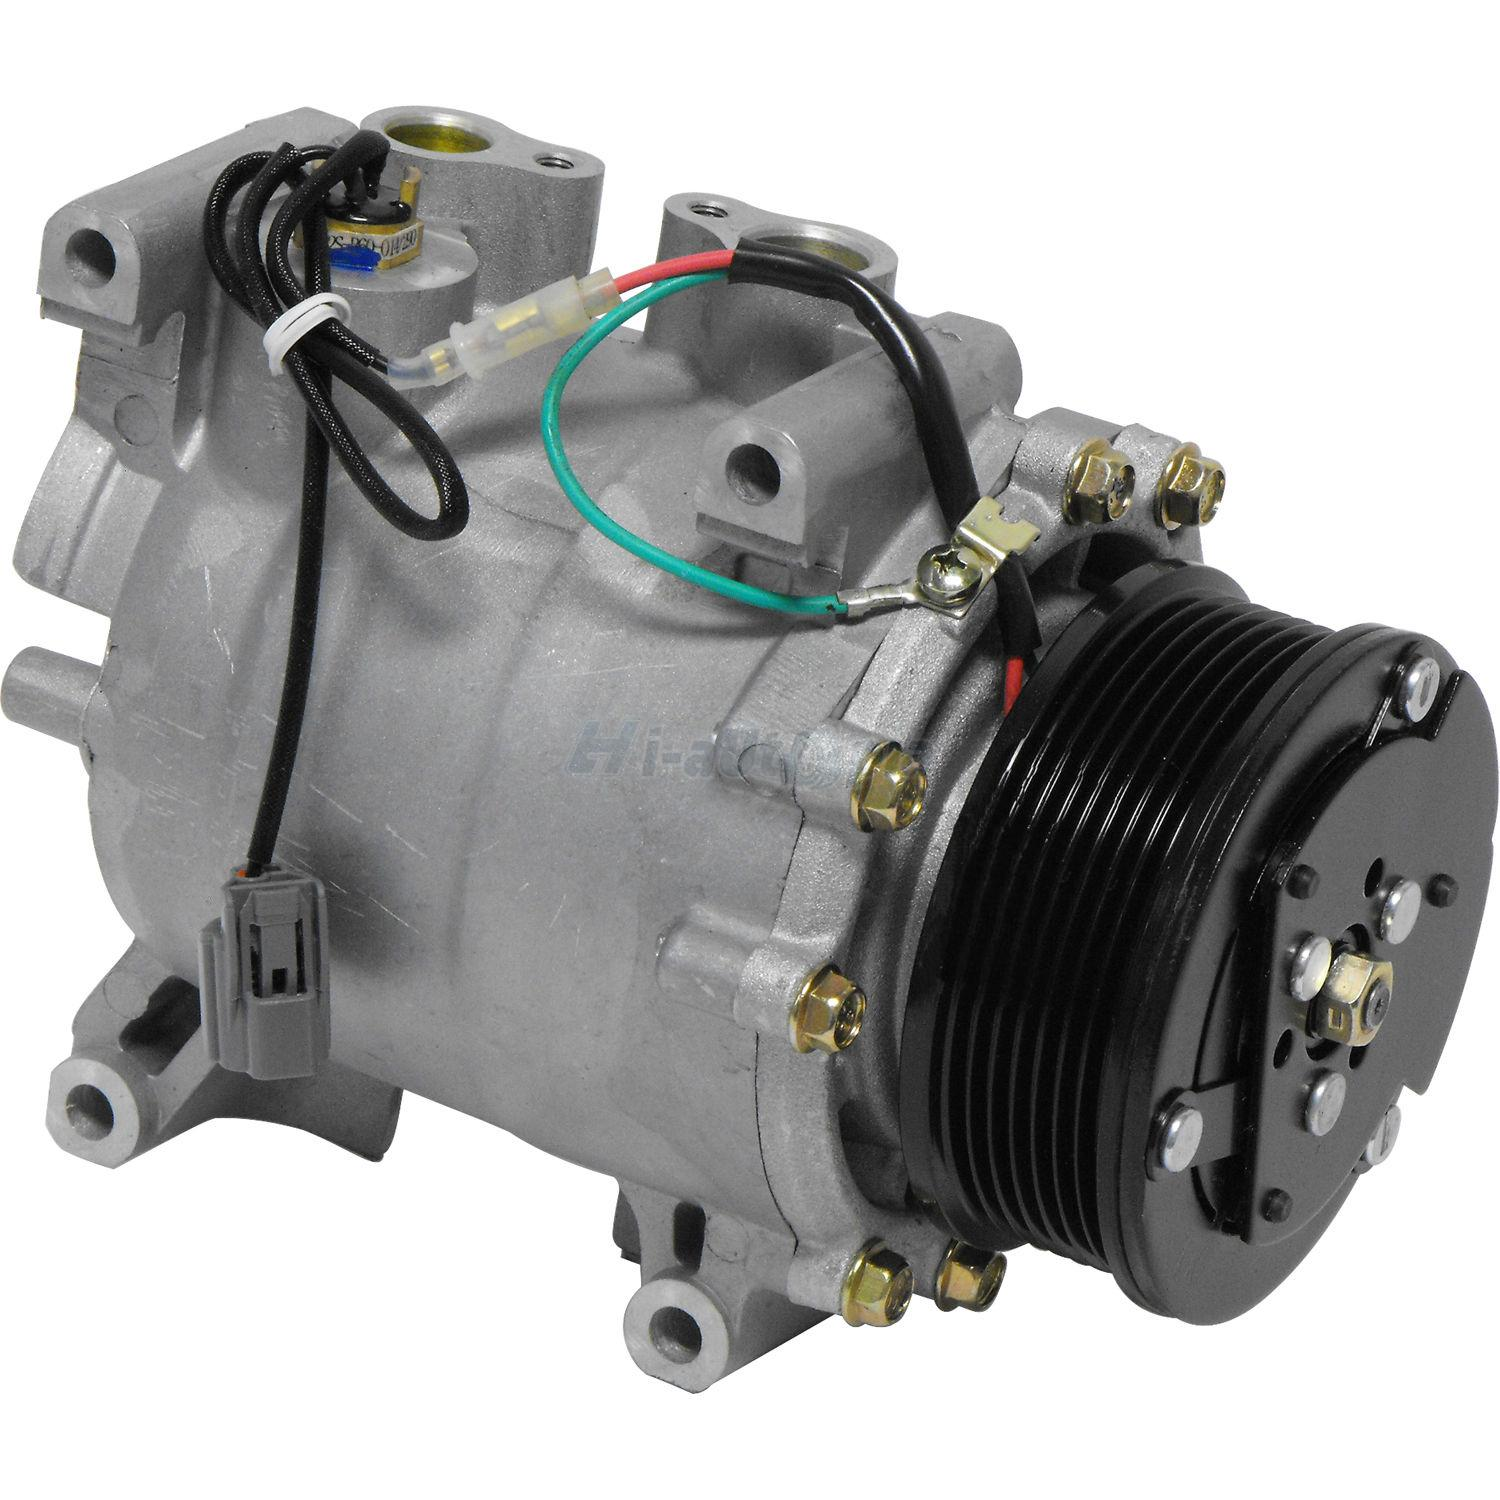 new ac compressor a c for 02 05 honda civic si sir 2 0l 02 06 rsx rh ebay com Air Compressor Air Compressor